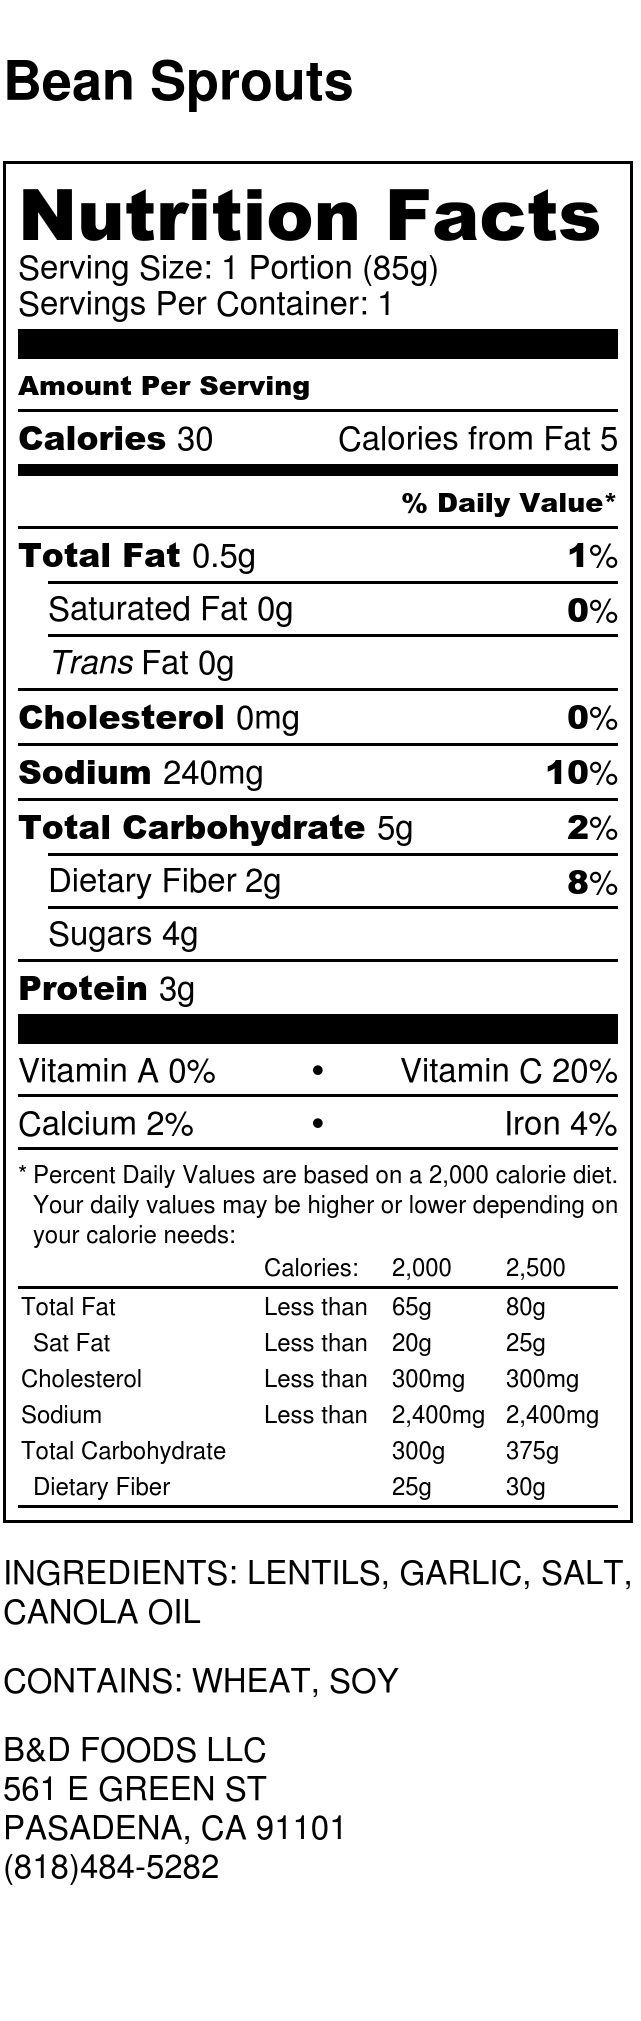 Bean Sprouts - Nutrition Label.jpg